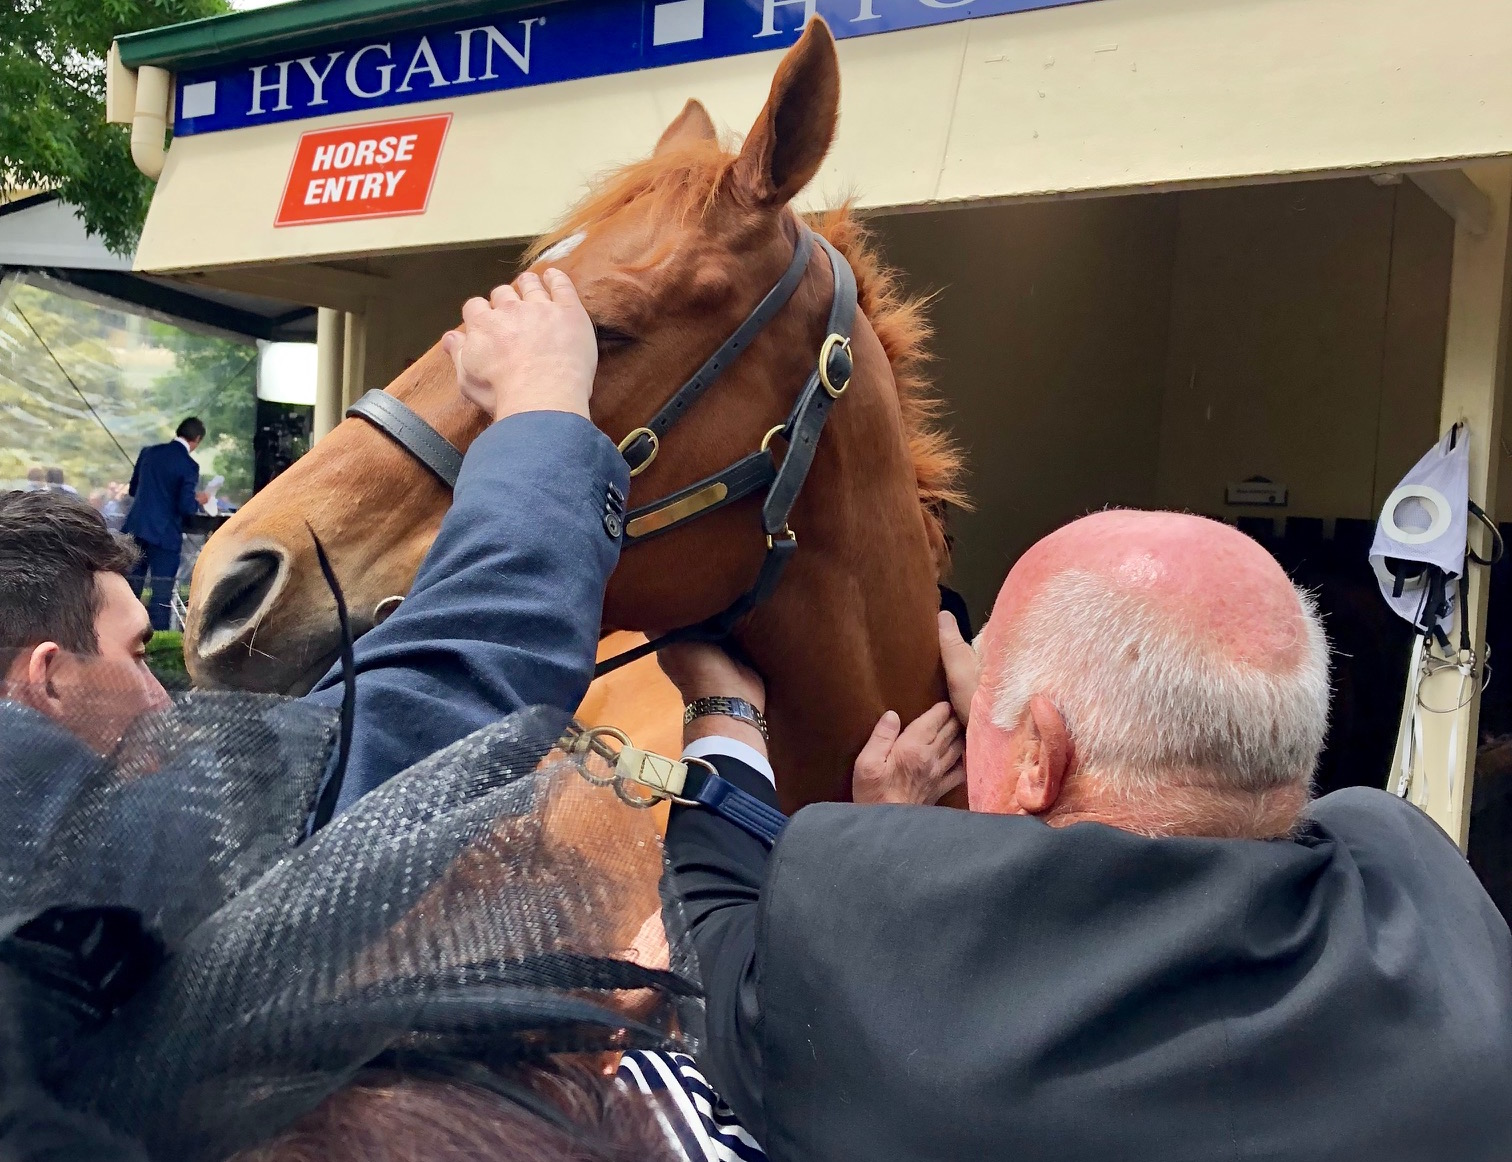 Basking in the attention: retired five-time Cox Plate contender Happy Trails. Photo: Amanda Duckworth